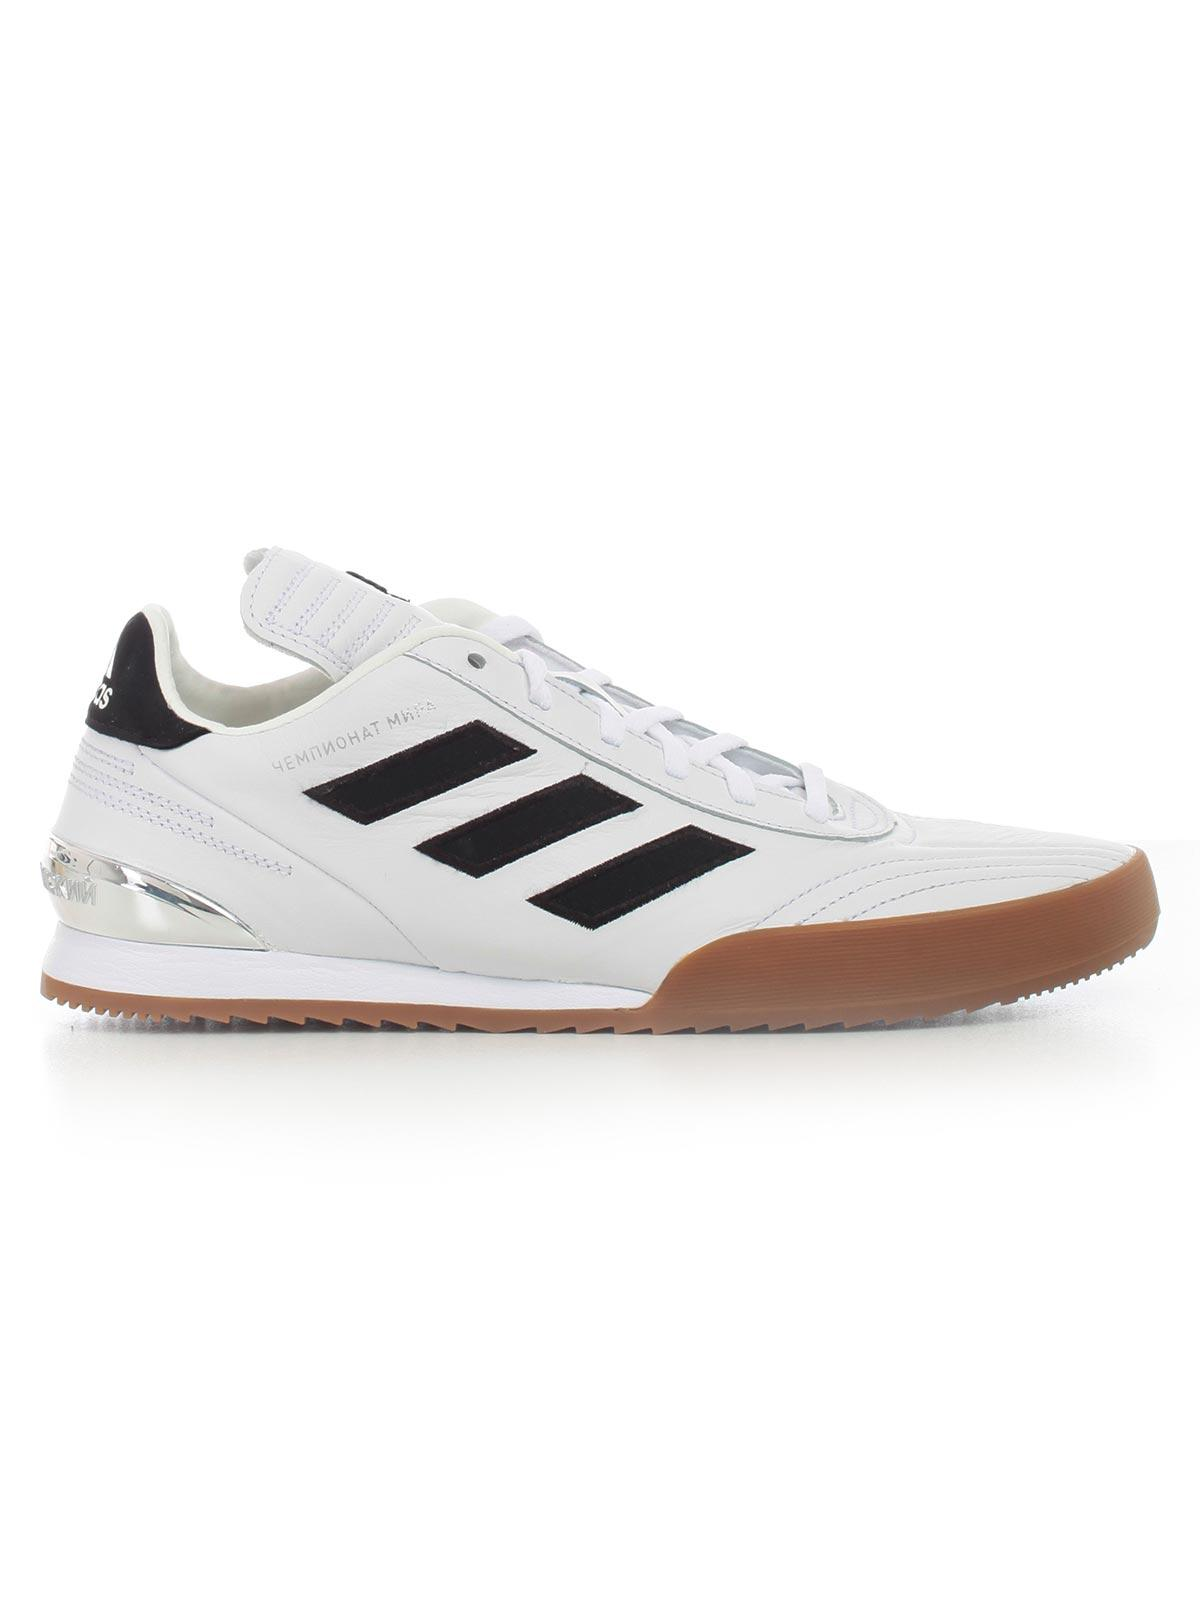 c06861694f6512 Lyst - Gosha Rubchinskiy Scarpa Adidas Copa in White for Men